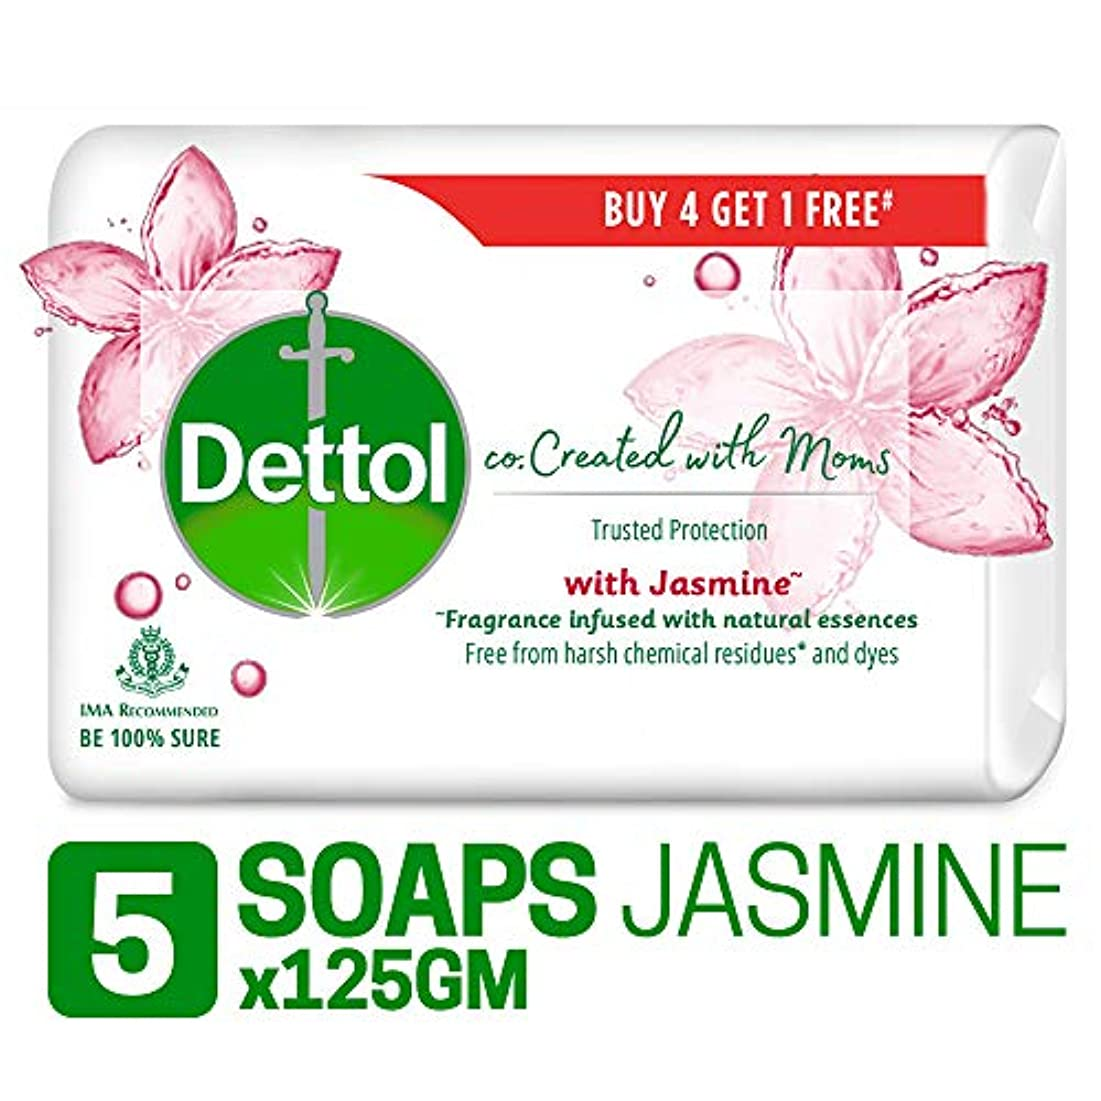 振る舞い繁殖投獄Dettol Co-created with moms Jasmine Bathing Soap, 125gm (Buy 4 Get 1 Free)